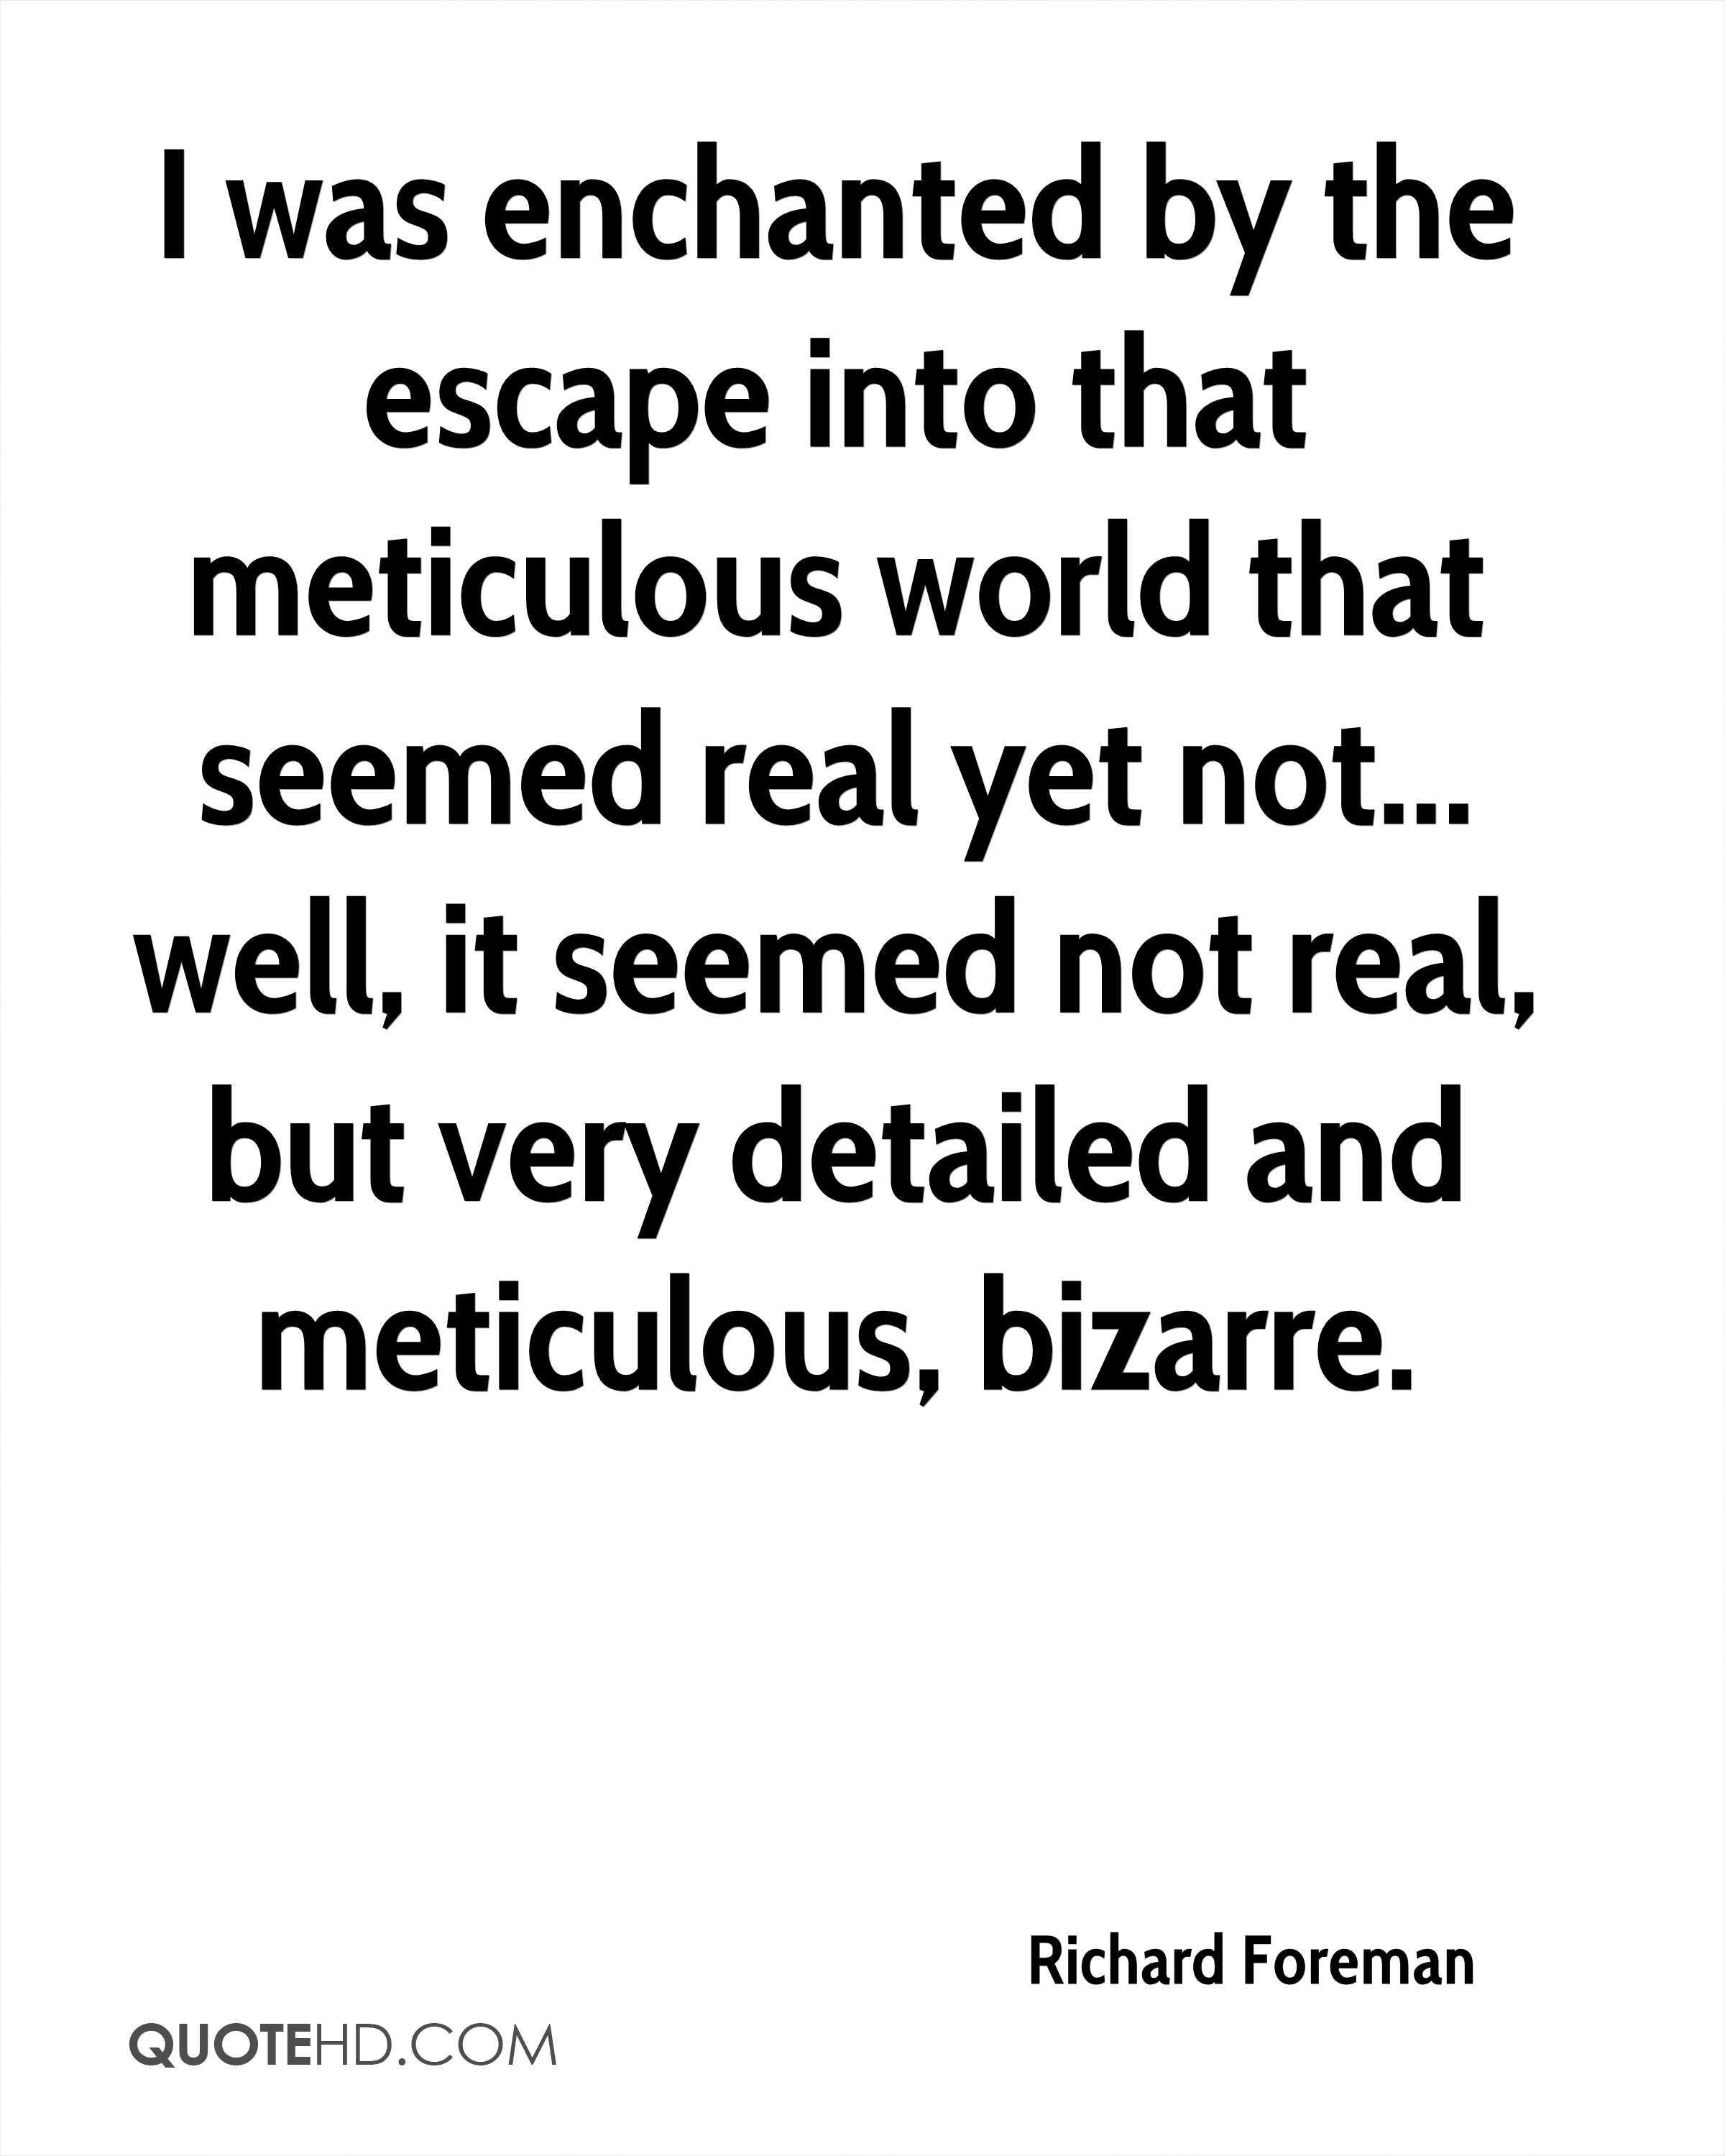 I was enchanted by the escape into that meticulous world that seemed real yet not... well, it seemed not real, but very detailed and meticulous, bizarre.